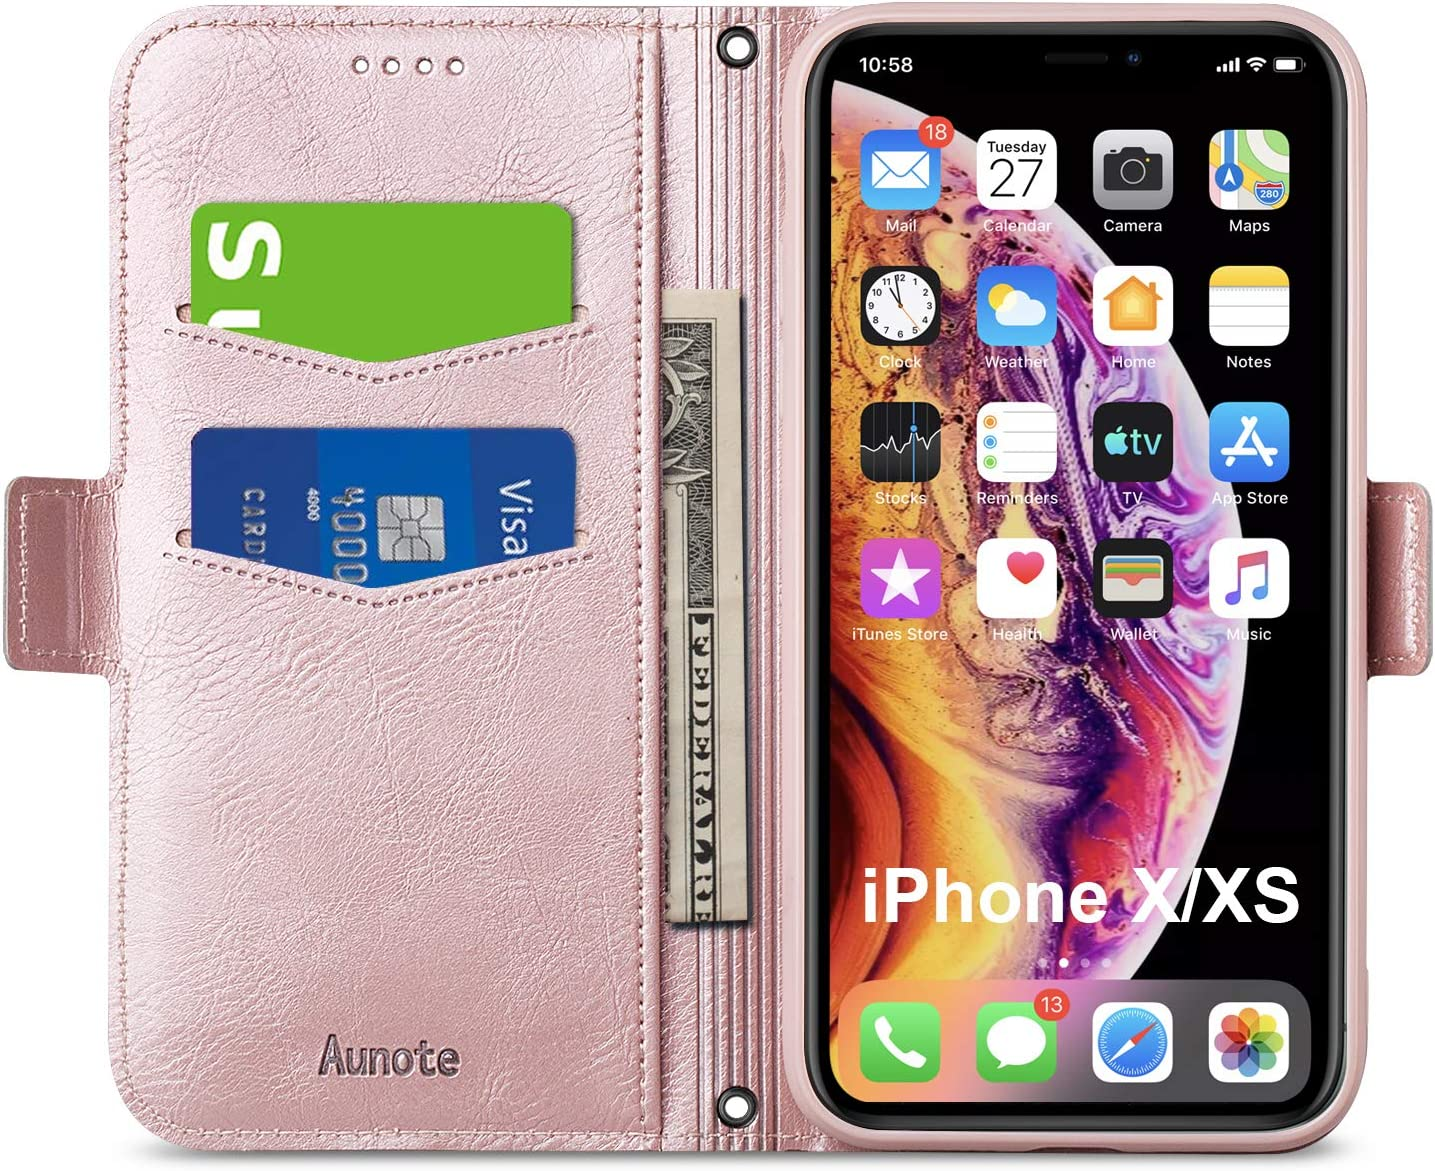 Aunote iPhone Xs Case Wallet, iPhone X Flip Case with Card Slot, Magnetic Closure and Kickstand, Soft TPU+Slim PU Leather Folio Phone Cover Full Protection for Apple iPhone X/XS/10. Rose Gold